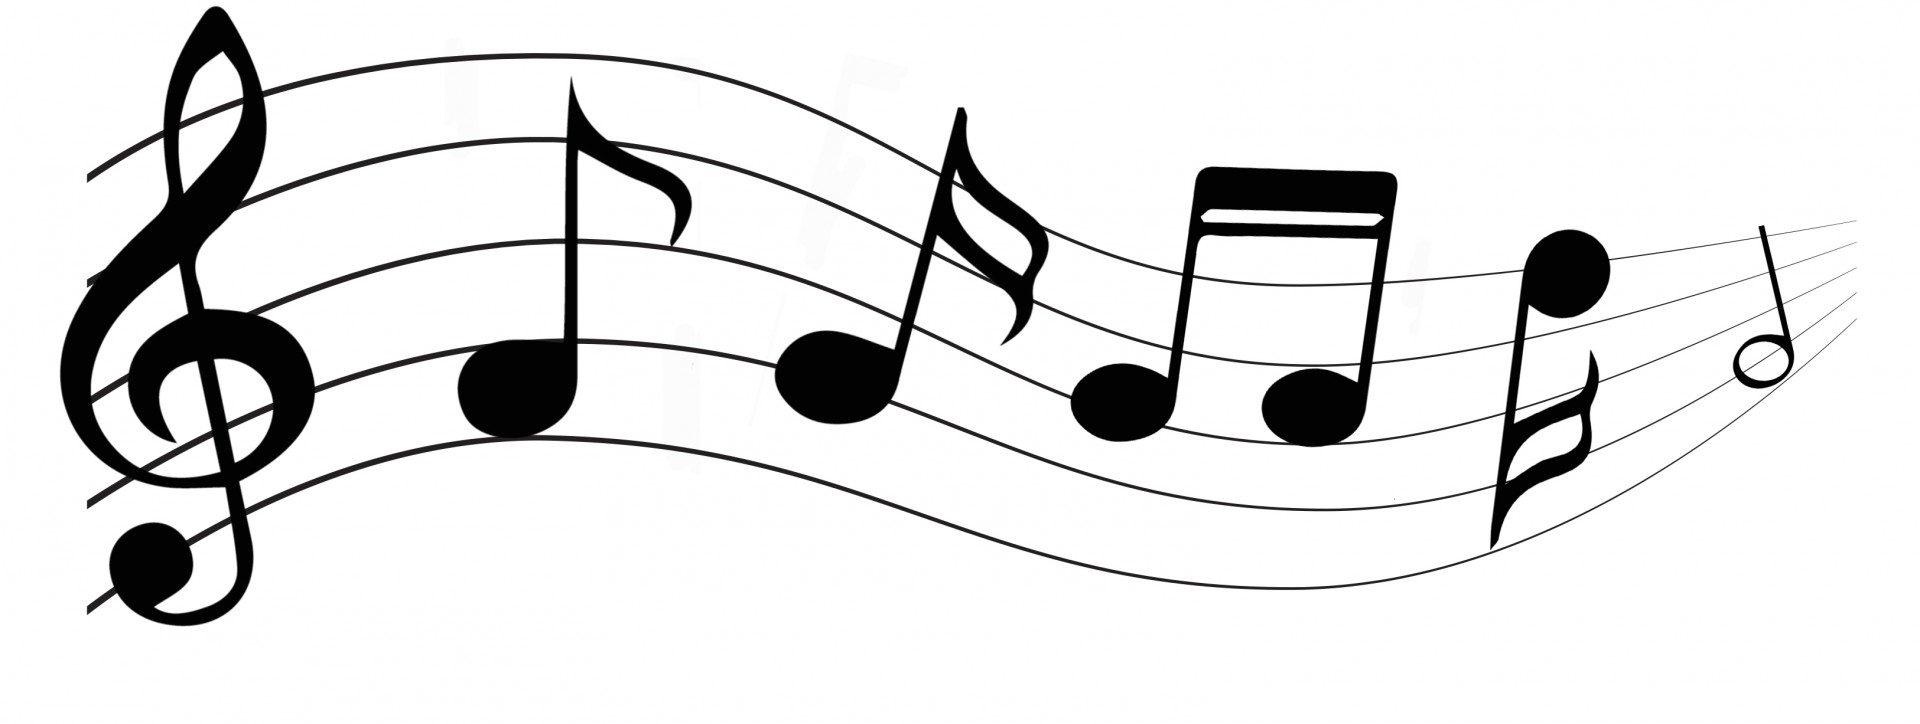 1920x724 Musical Notes Port Colborne Public Library